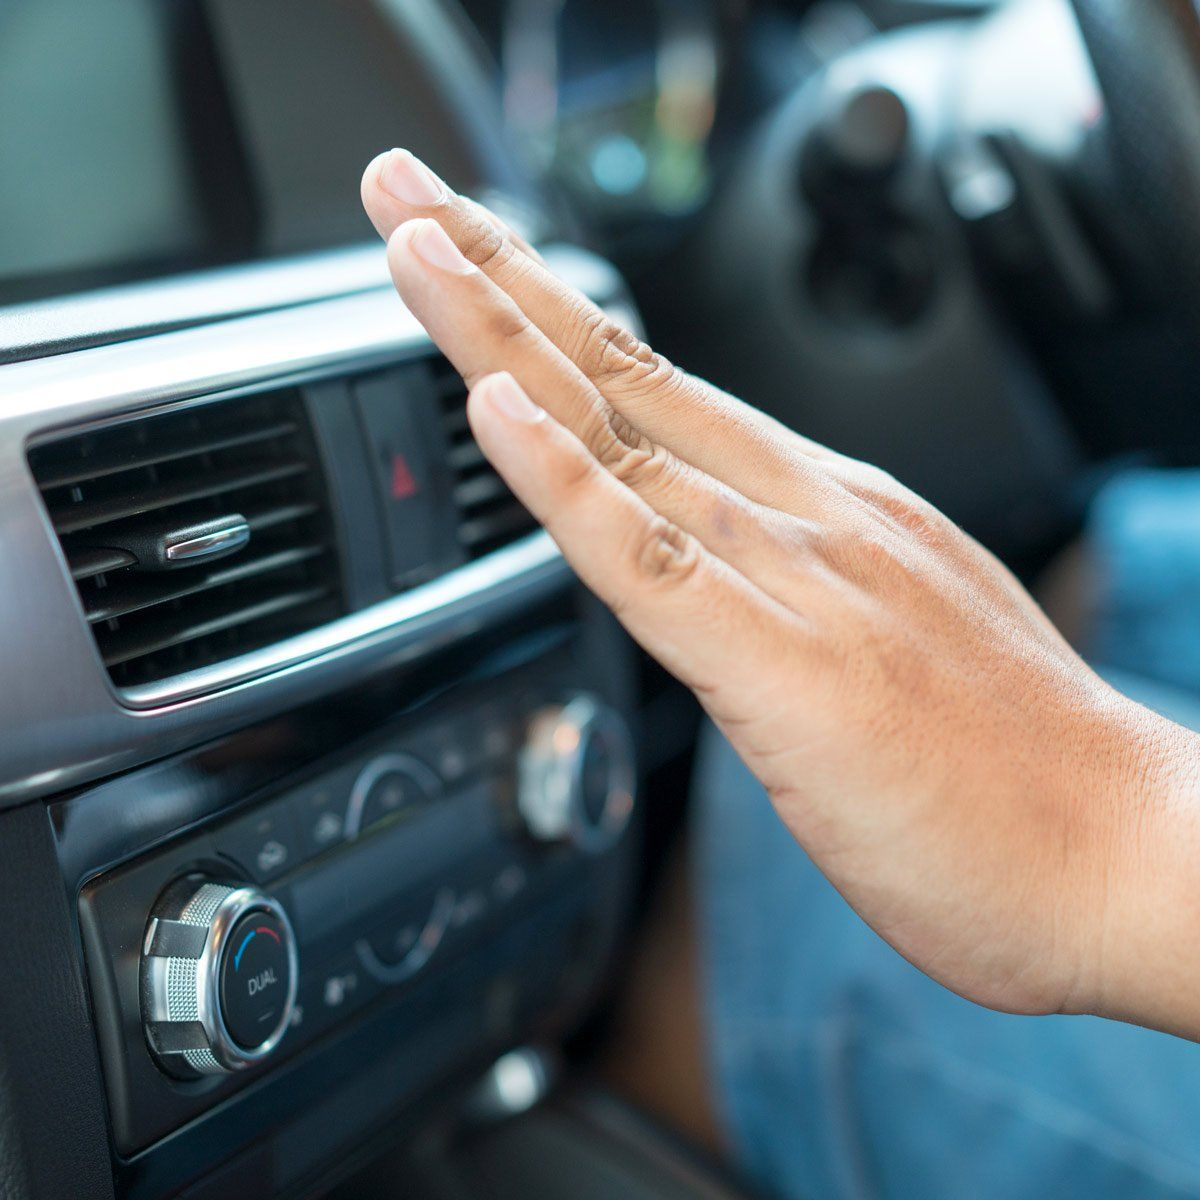 Why Isn't My Car AC Blowing Cold Air? in 2020 Cold air